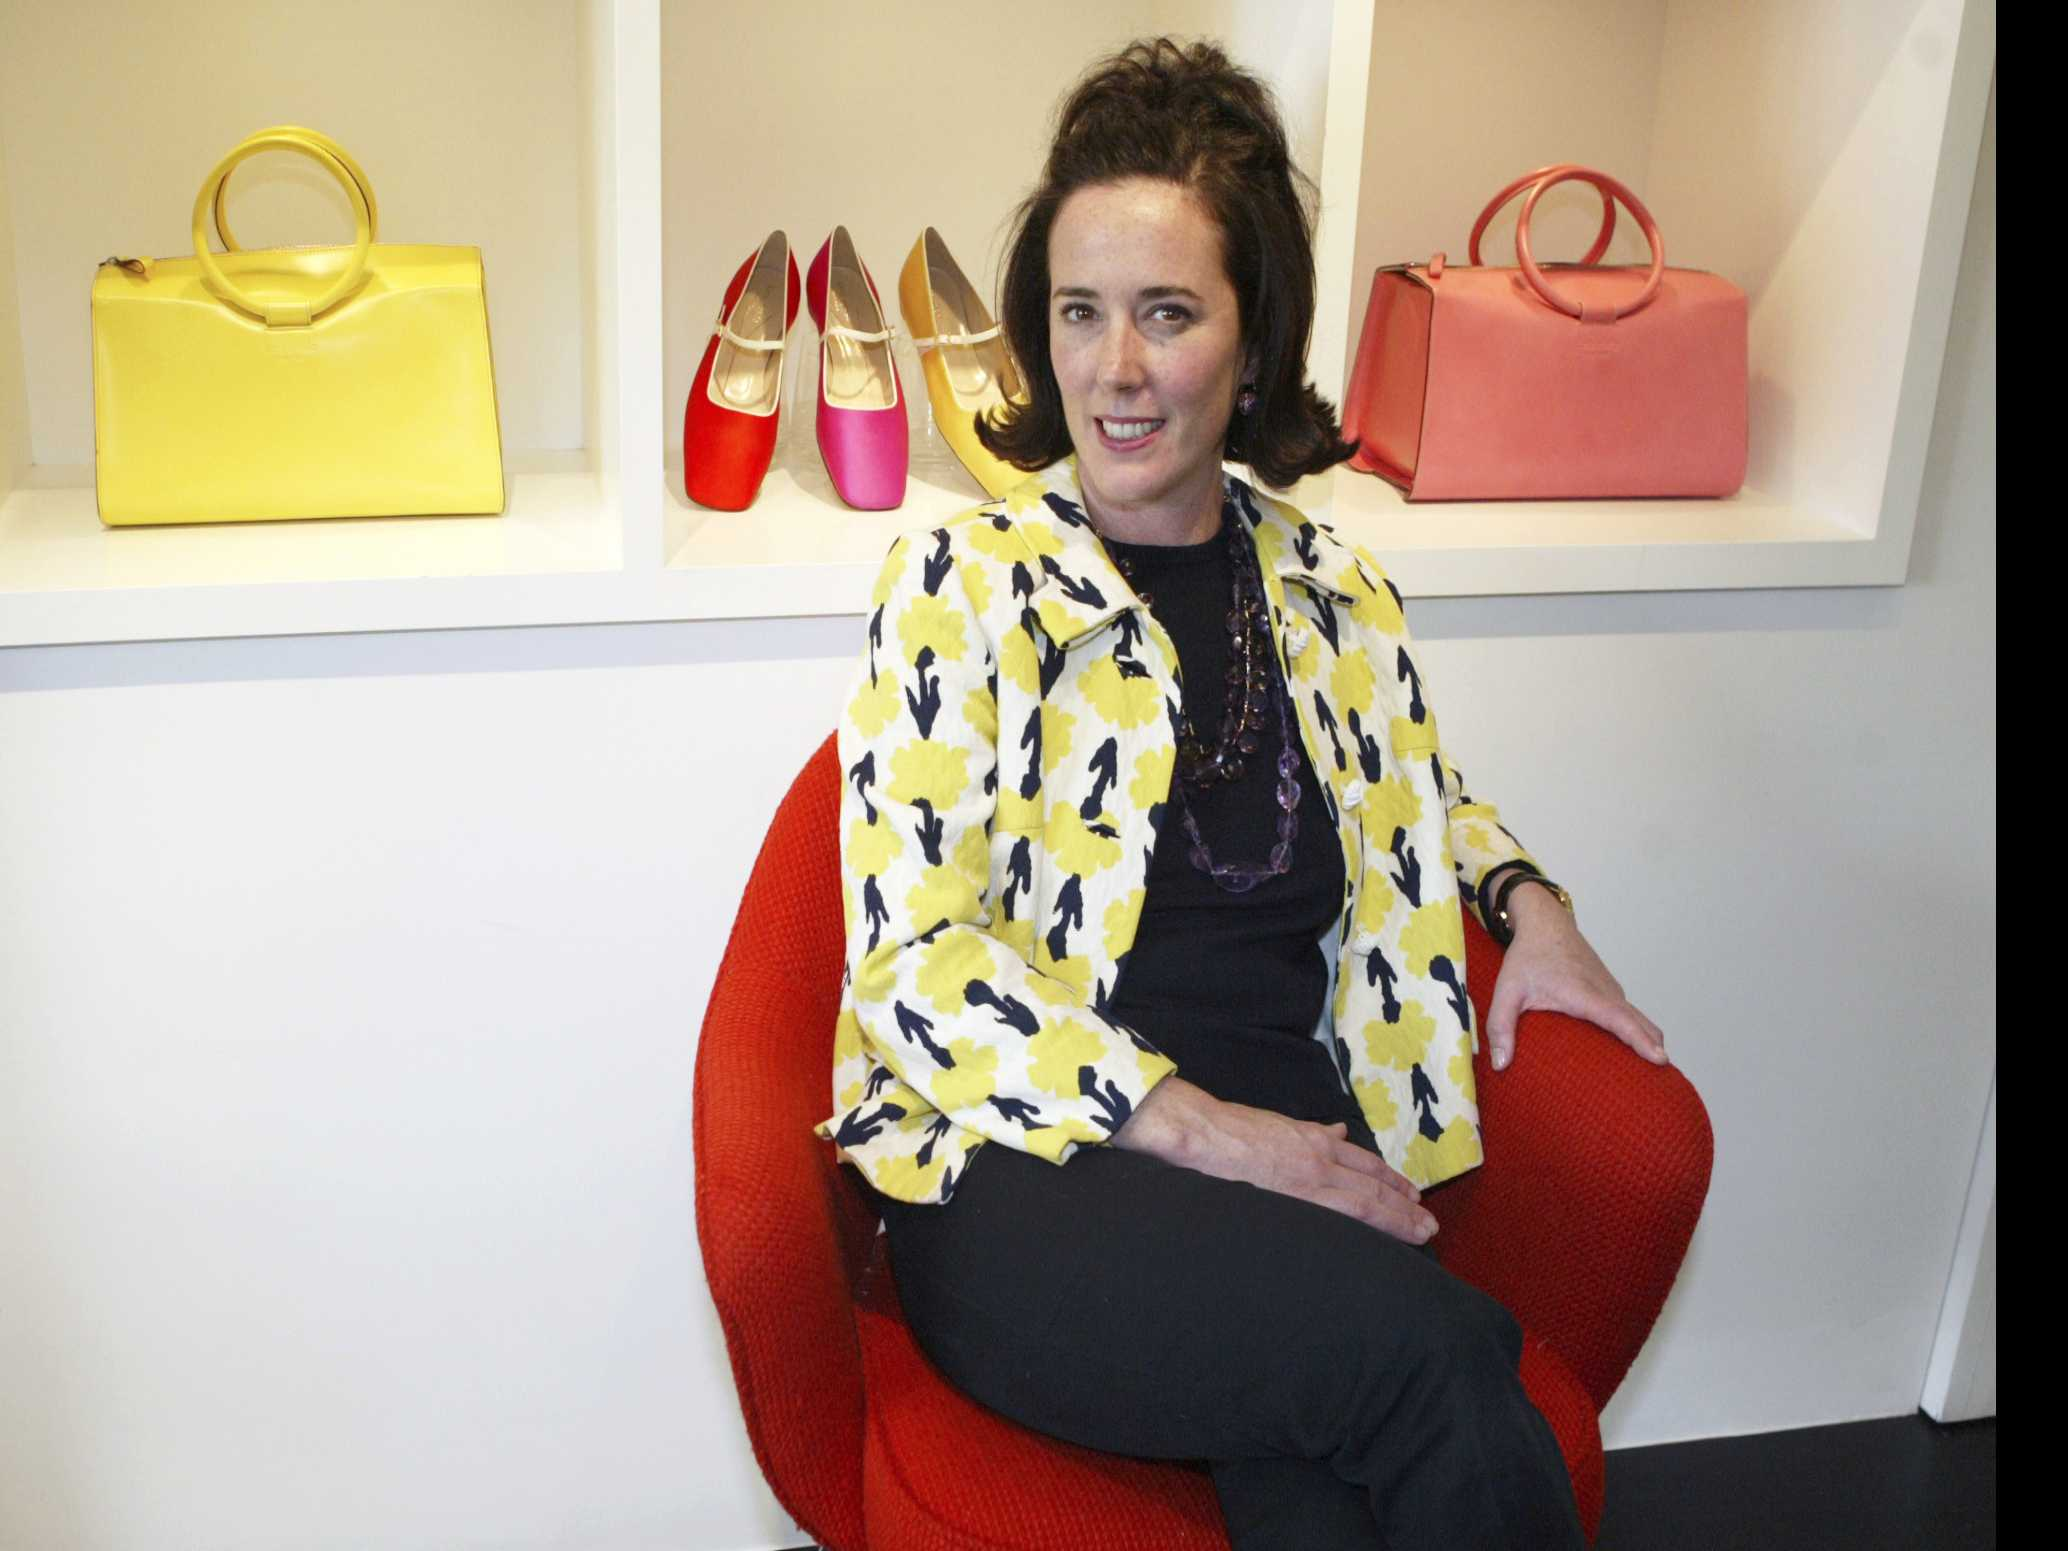 Kate Spade's Death Ruled a Suicide by Hanging